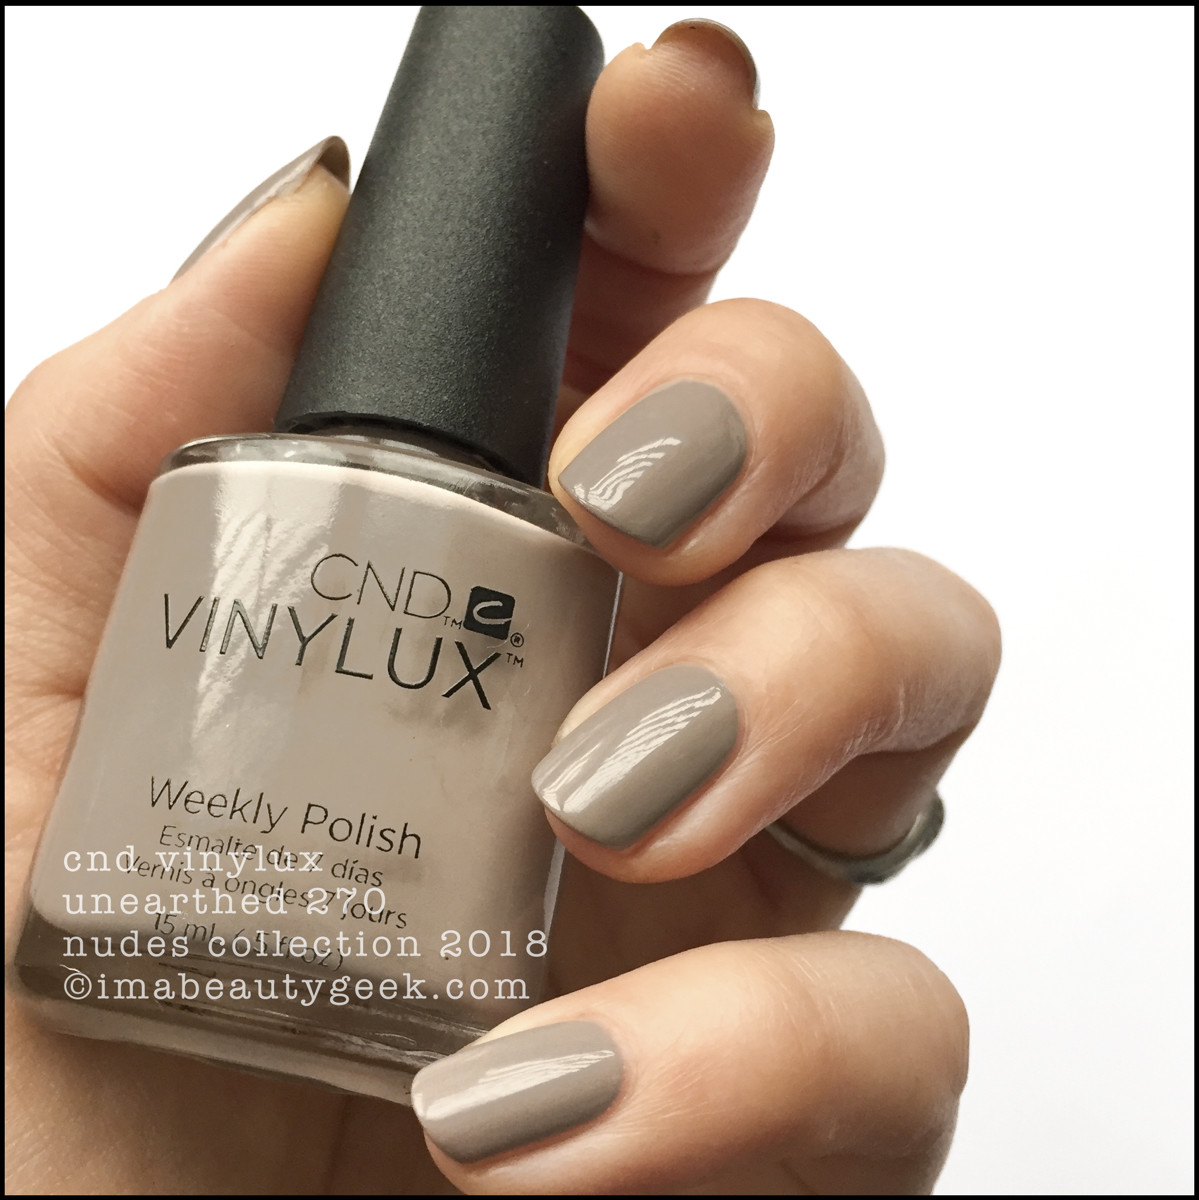 CND Vinylux Unearthed 270 - Vinylux Nudes Collection Swatches 2018